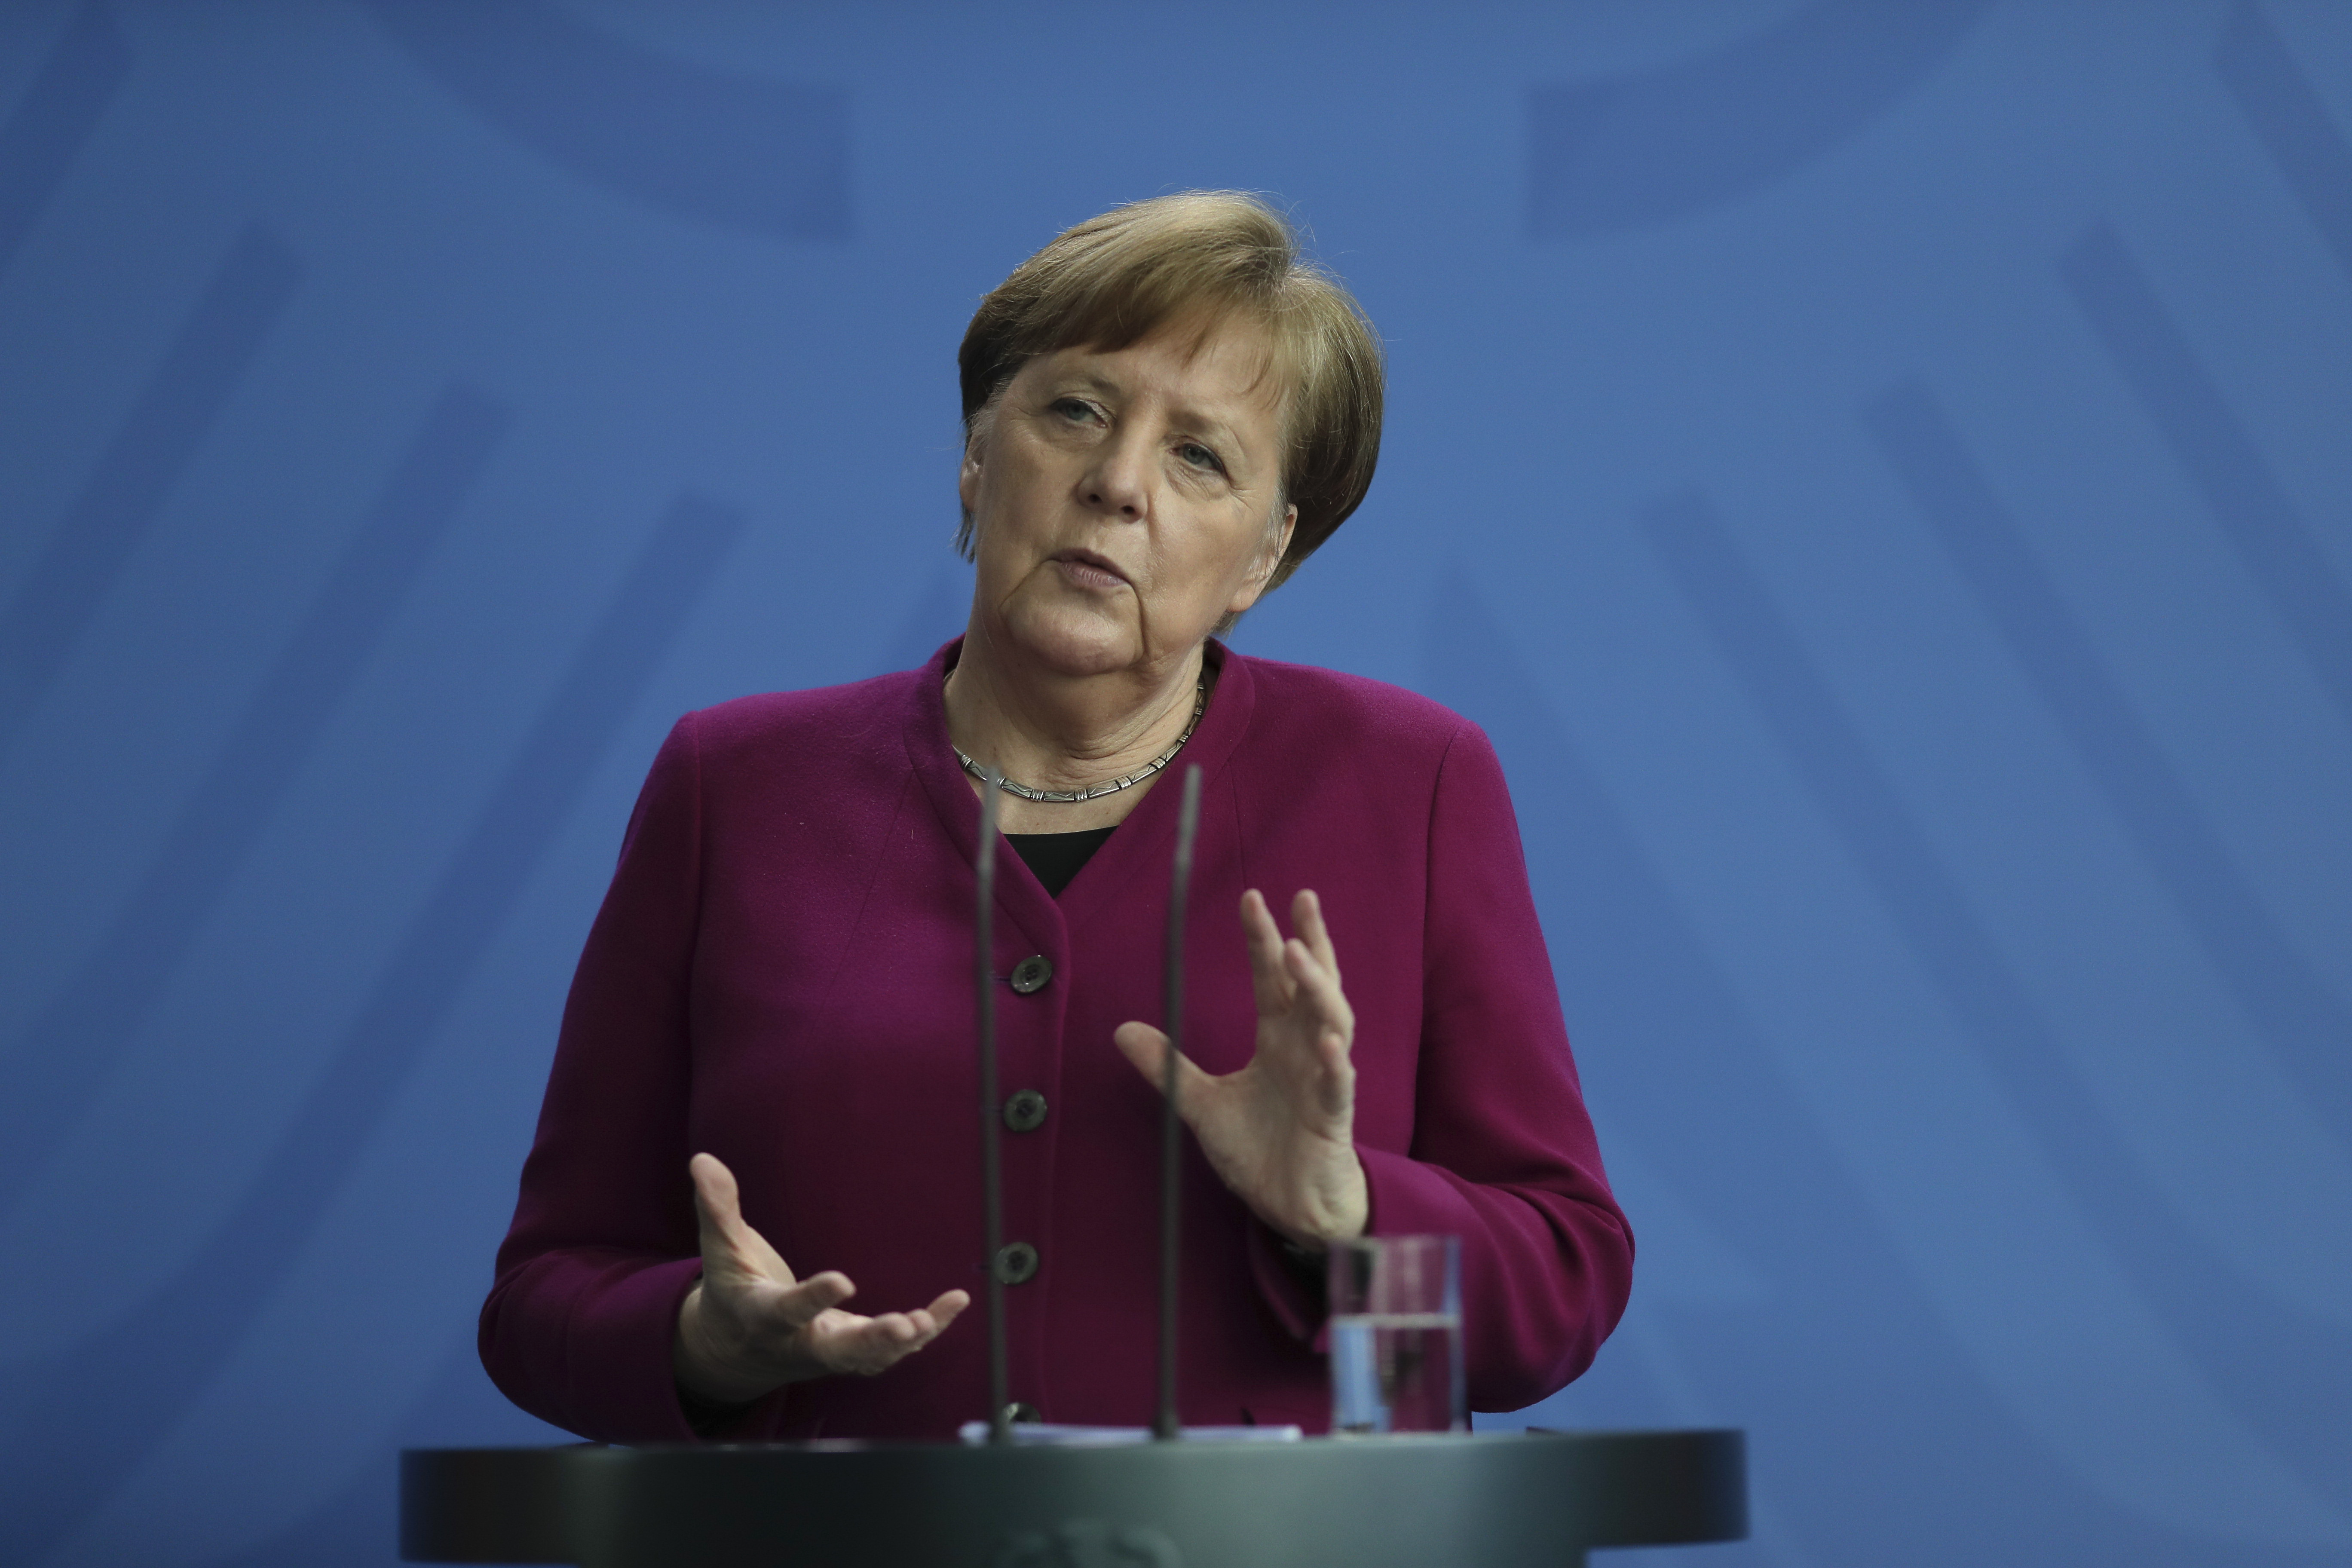 German Chancellor Angela Merkel briefs the media about measures of the German government to avoid further spread of the coronavirus at the chancellery in Berlin, Germany, Thursday, April 9, 2020. In order to slow down the spread of the coronavirus, the German government has considerably restricted public life and asked the citizens to stay at home. The new coronavirus causes mild or moderate symptoms for most people, but for some, especially older adults and people with existing health problems, it can cause more severe illness or death. (AP Photo/Markus Schreiber, Pool)